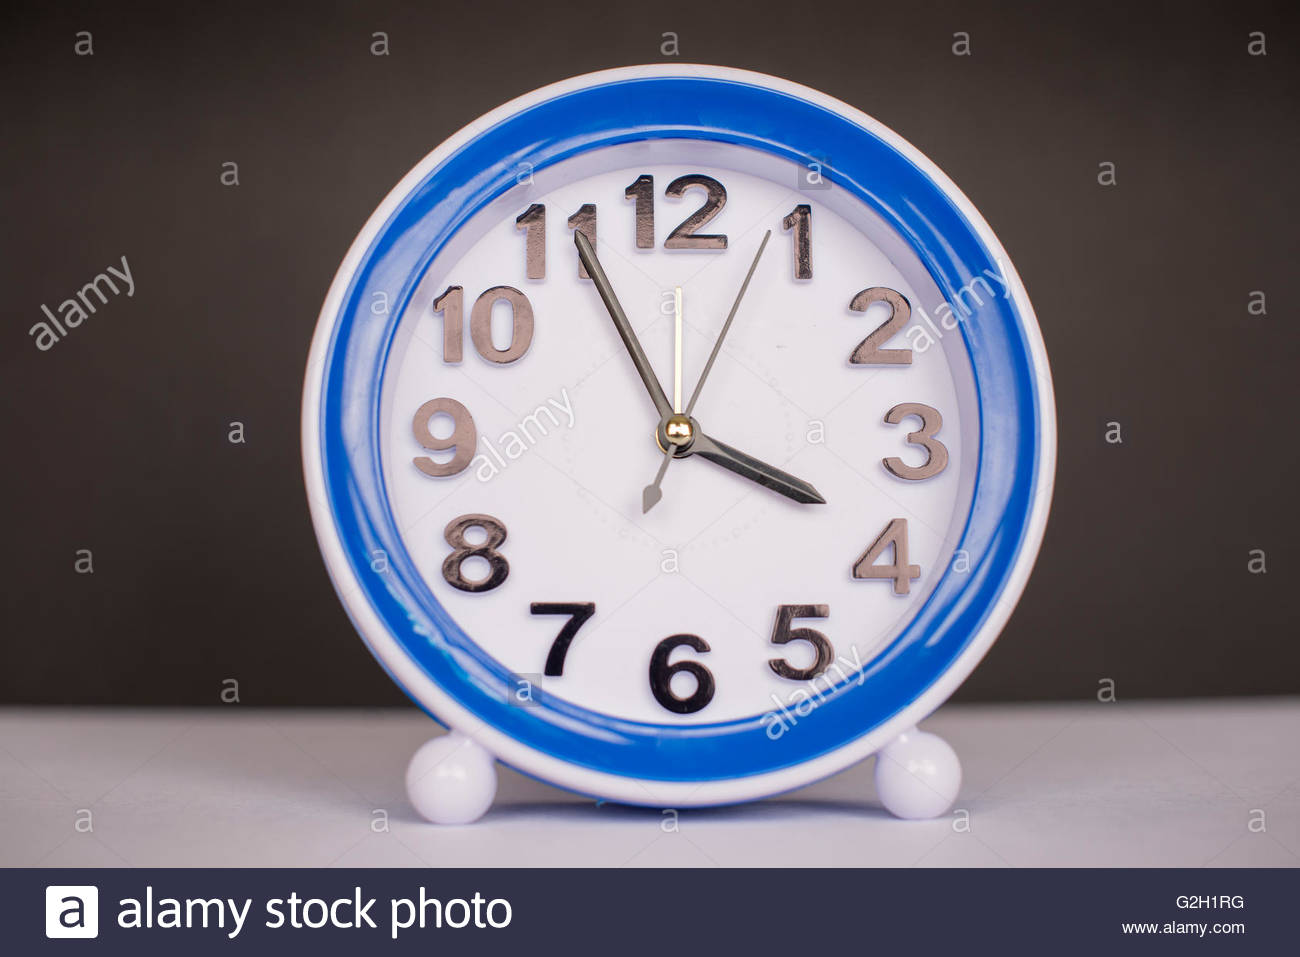 Blue table clock paced on a white surface with a black background. - Stock Image